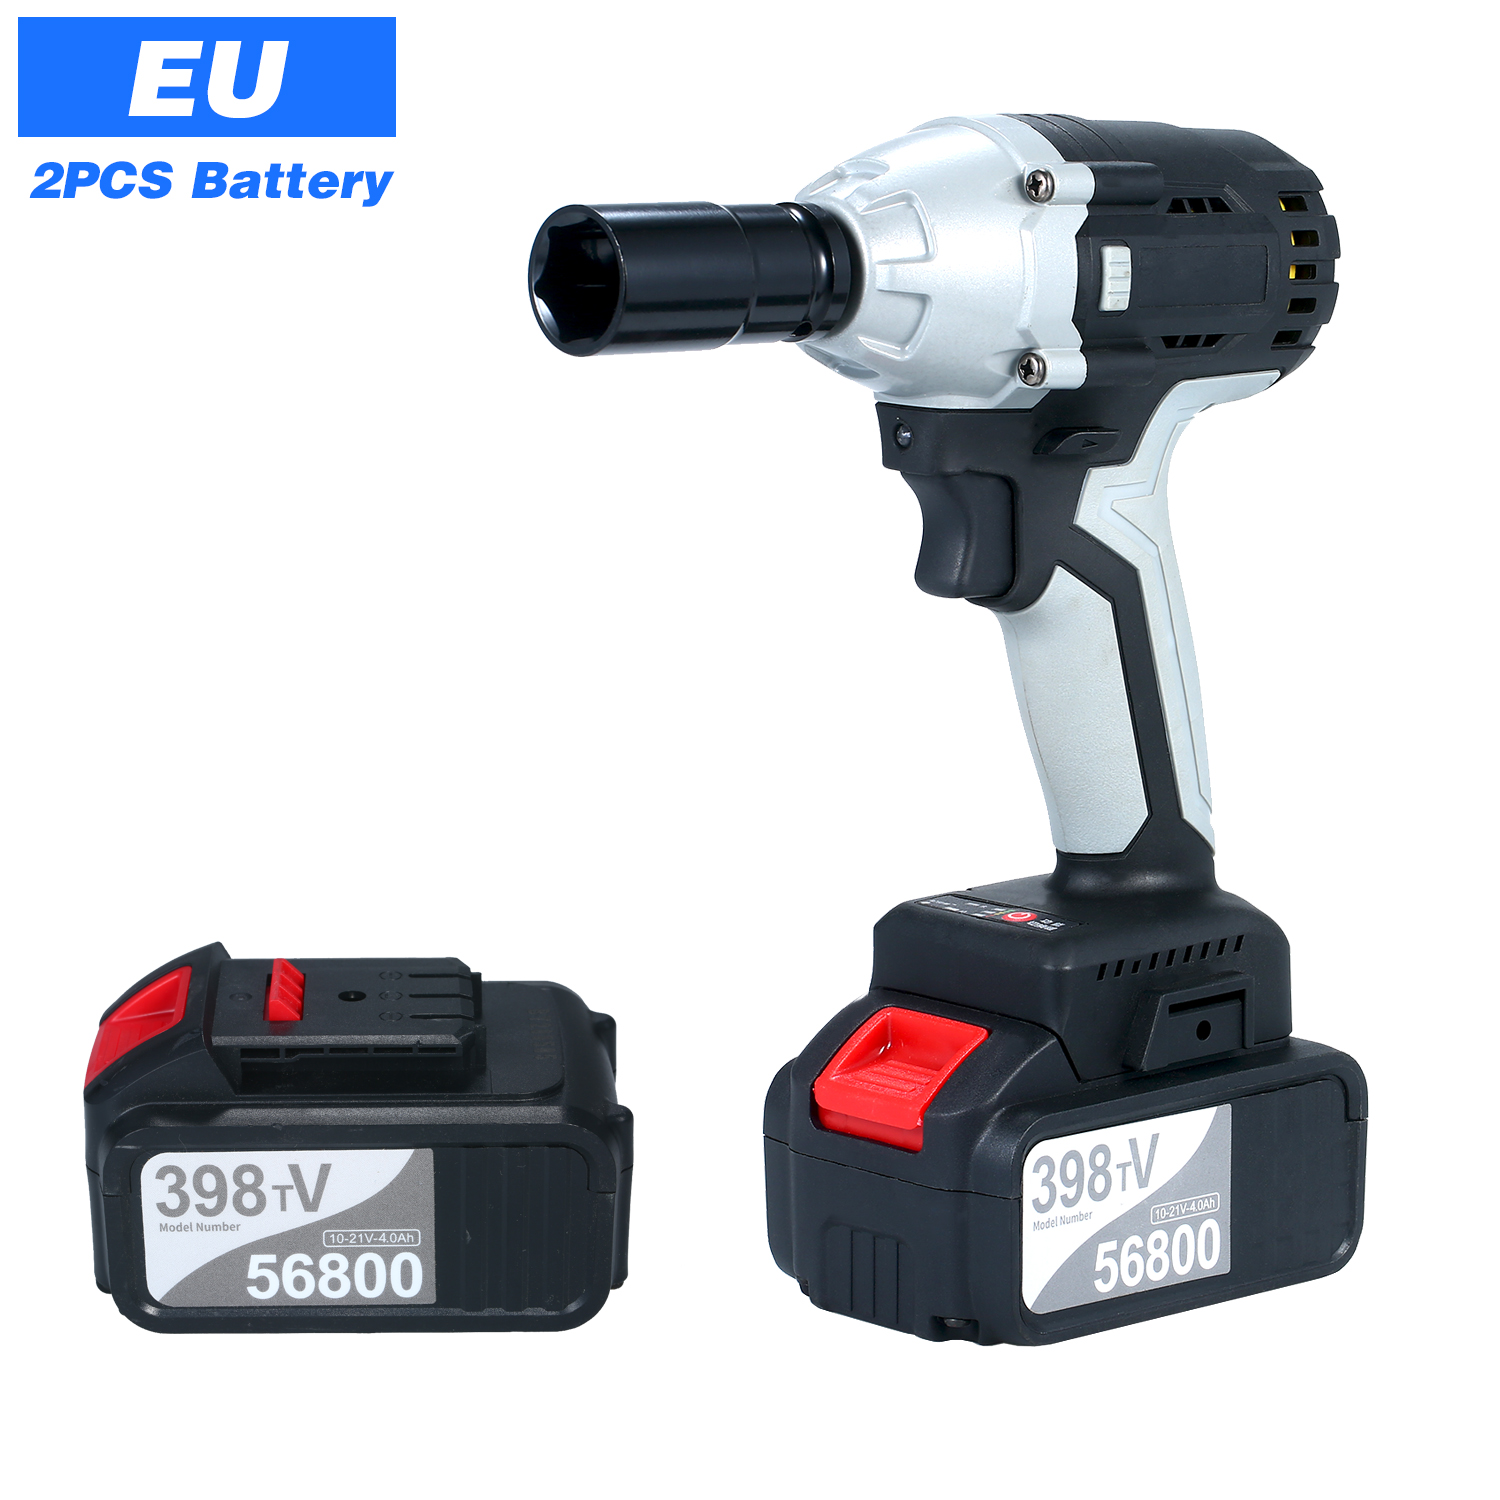 Handheld Professional Cordless Electric Brushless Impact Wrench with 1 2in Chuck with Driver Impact Sockets